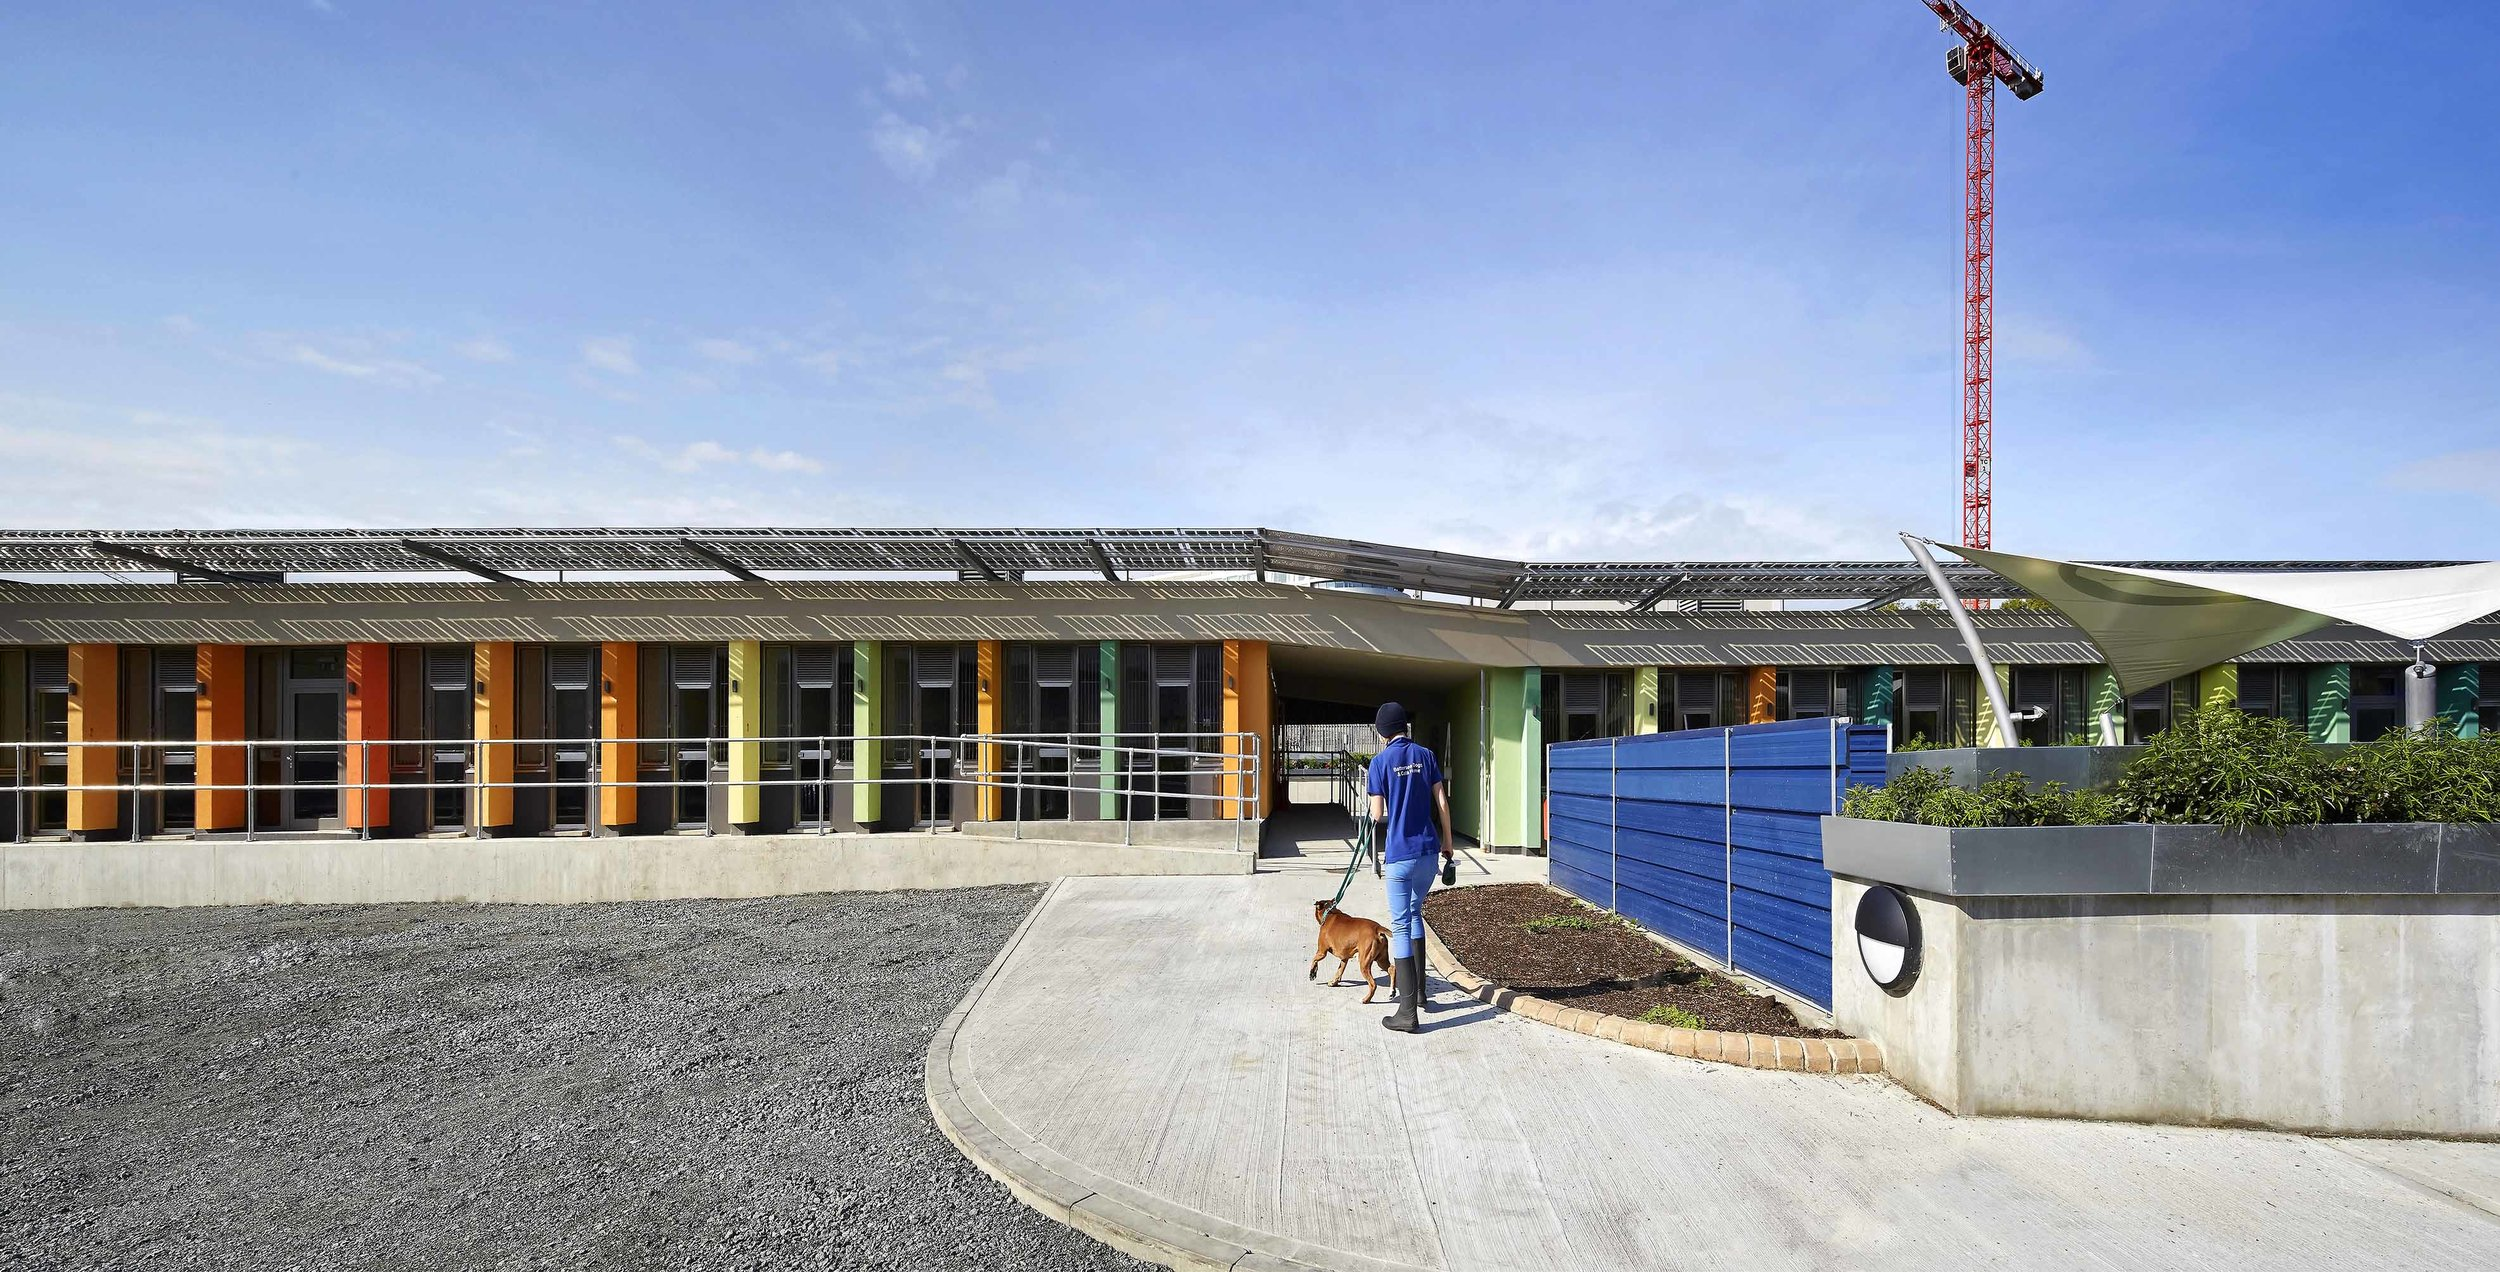 JCA_Battersea Dogs and Cats Home_©Hufton+Crow_020ab.jpg